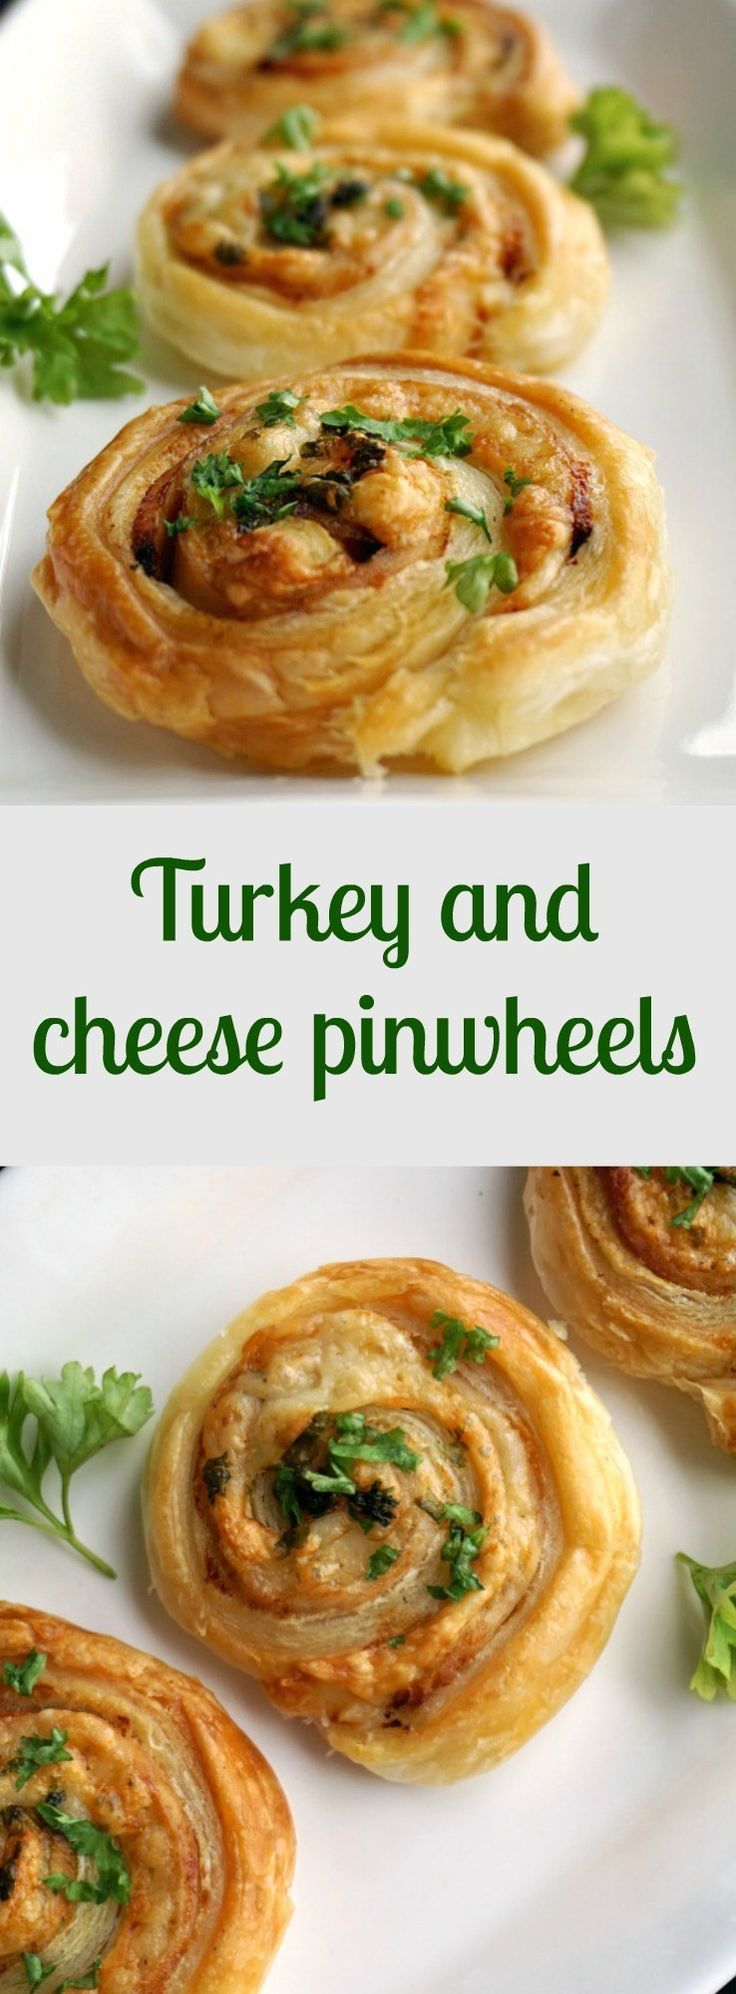 Turkey and cheese pinwheels, a fancy appetizer for any family gathering, party or picnic. Easy to make, with a delicate smokey flavour, these bites will not last long on the plate. Make  sure you grab one before they are gone!